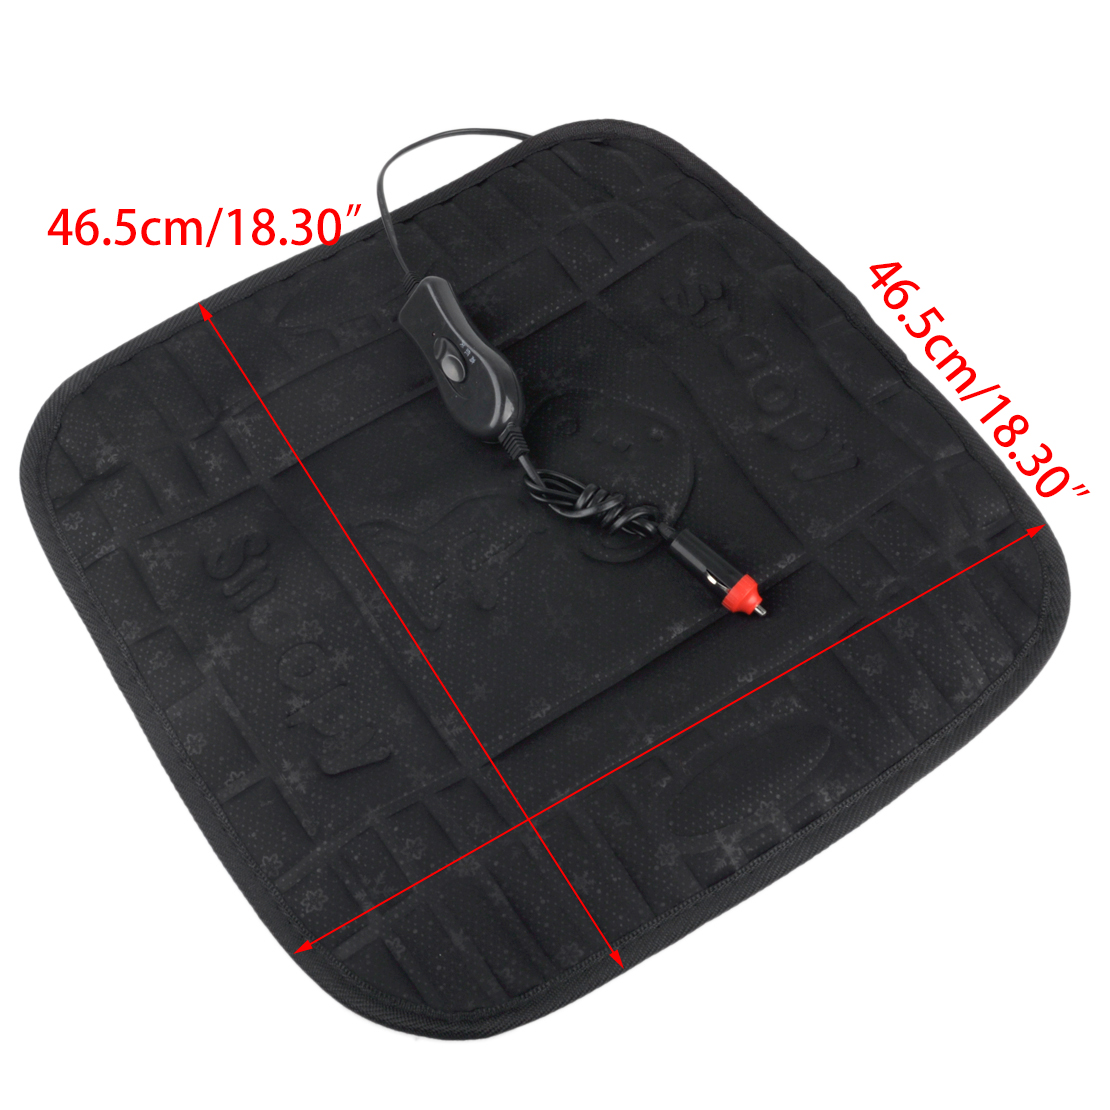 new 12v car heated cushion seat hot cover auto heat heater warmer pad ebay. Black Bedroom Furniture Sets. Home Design Ideas